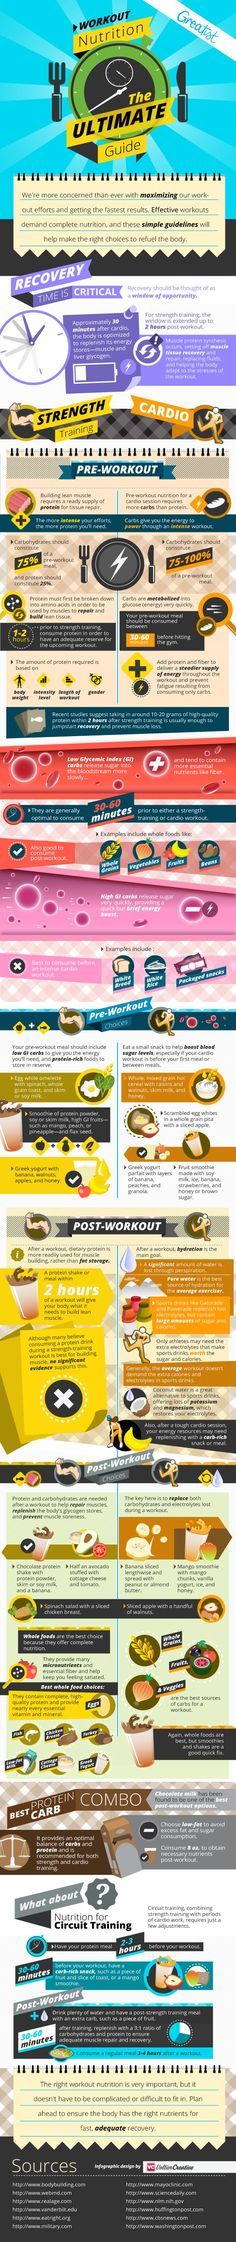 The Complete Guide to Workout Nutrition [Infographic] (maximizing workout efforts and getting faster results) - From Greatist :: @greatist :: | Glamour Shots Photography